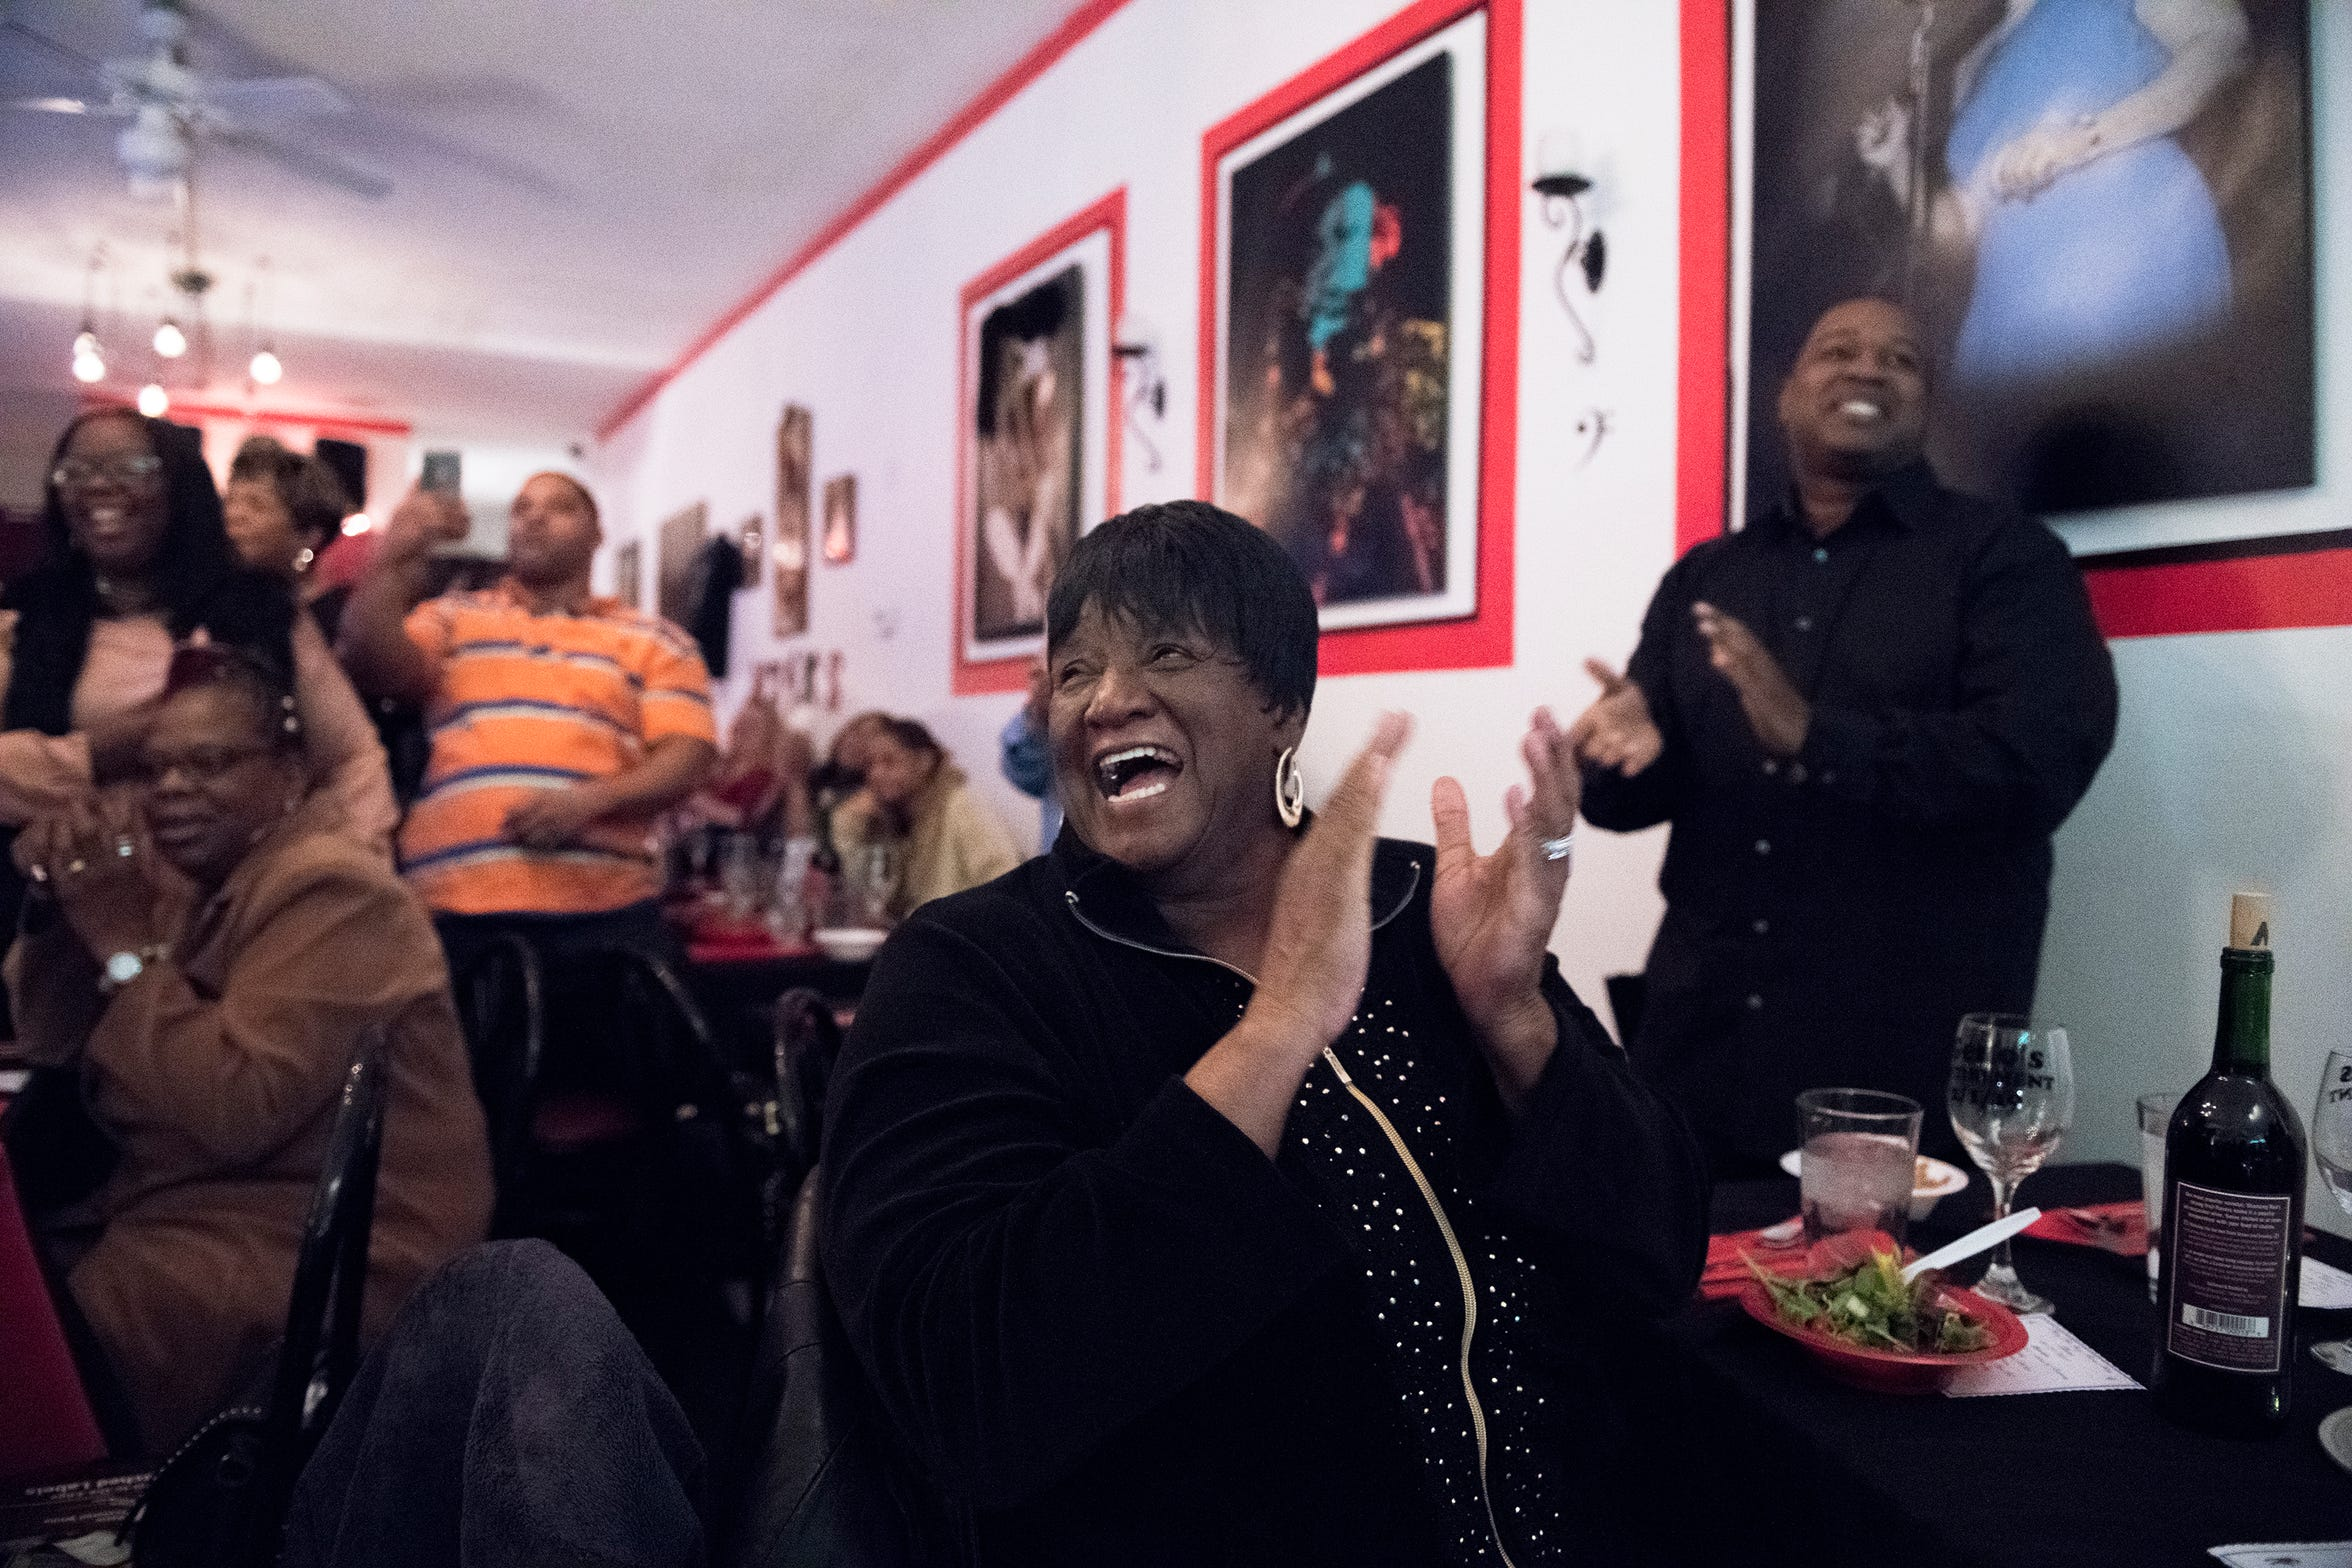 Darlene Wright of Sicklerville, center, celebrates the retirement of her friend Eugene Lambert of Camden, not pictured, at May the Jazz Never Stop Jazz Cafe in Haddon Heights.